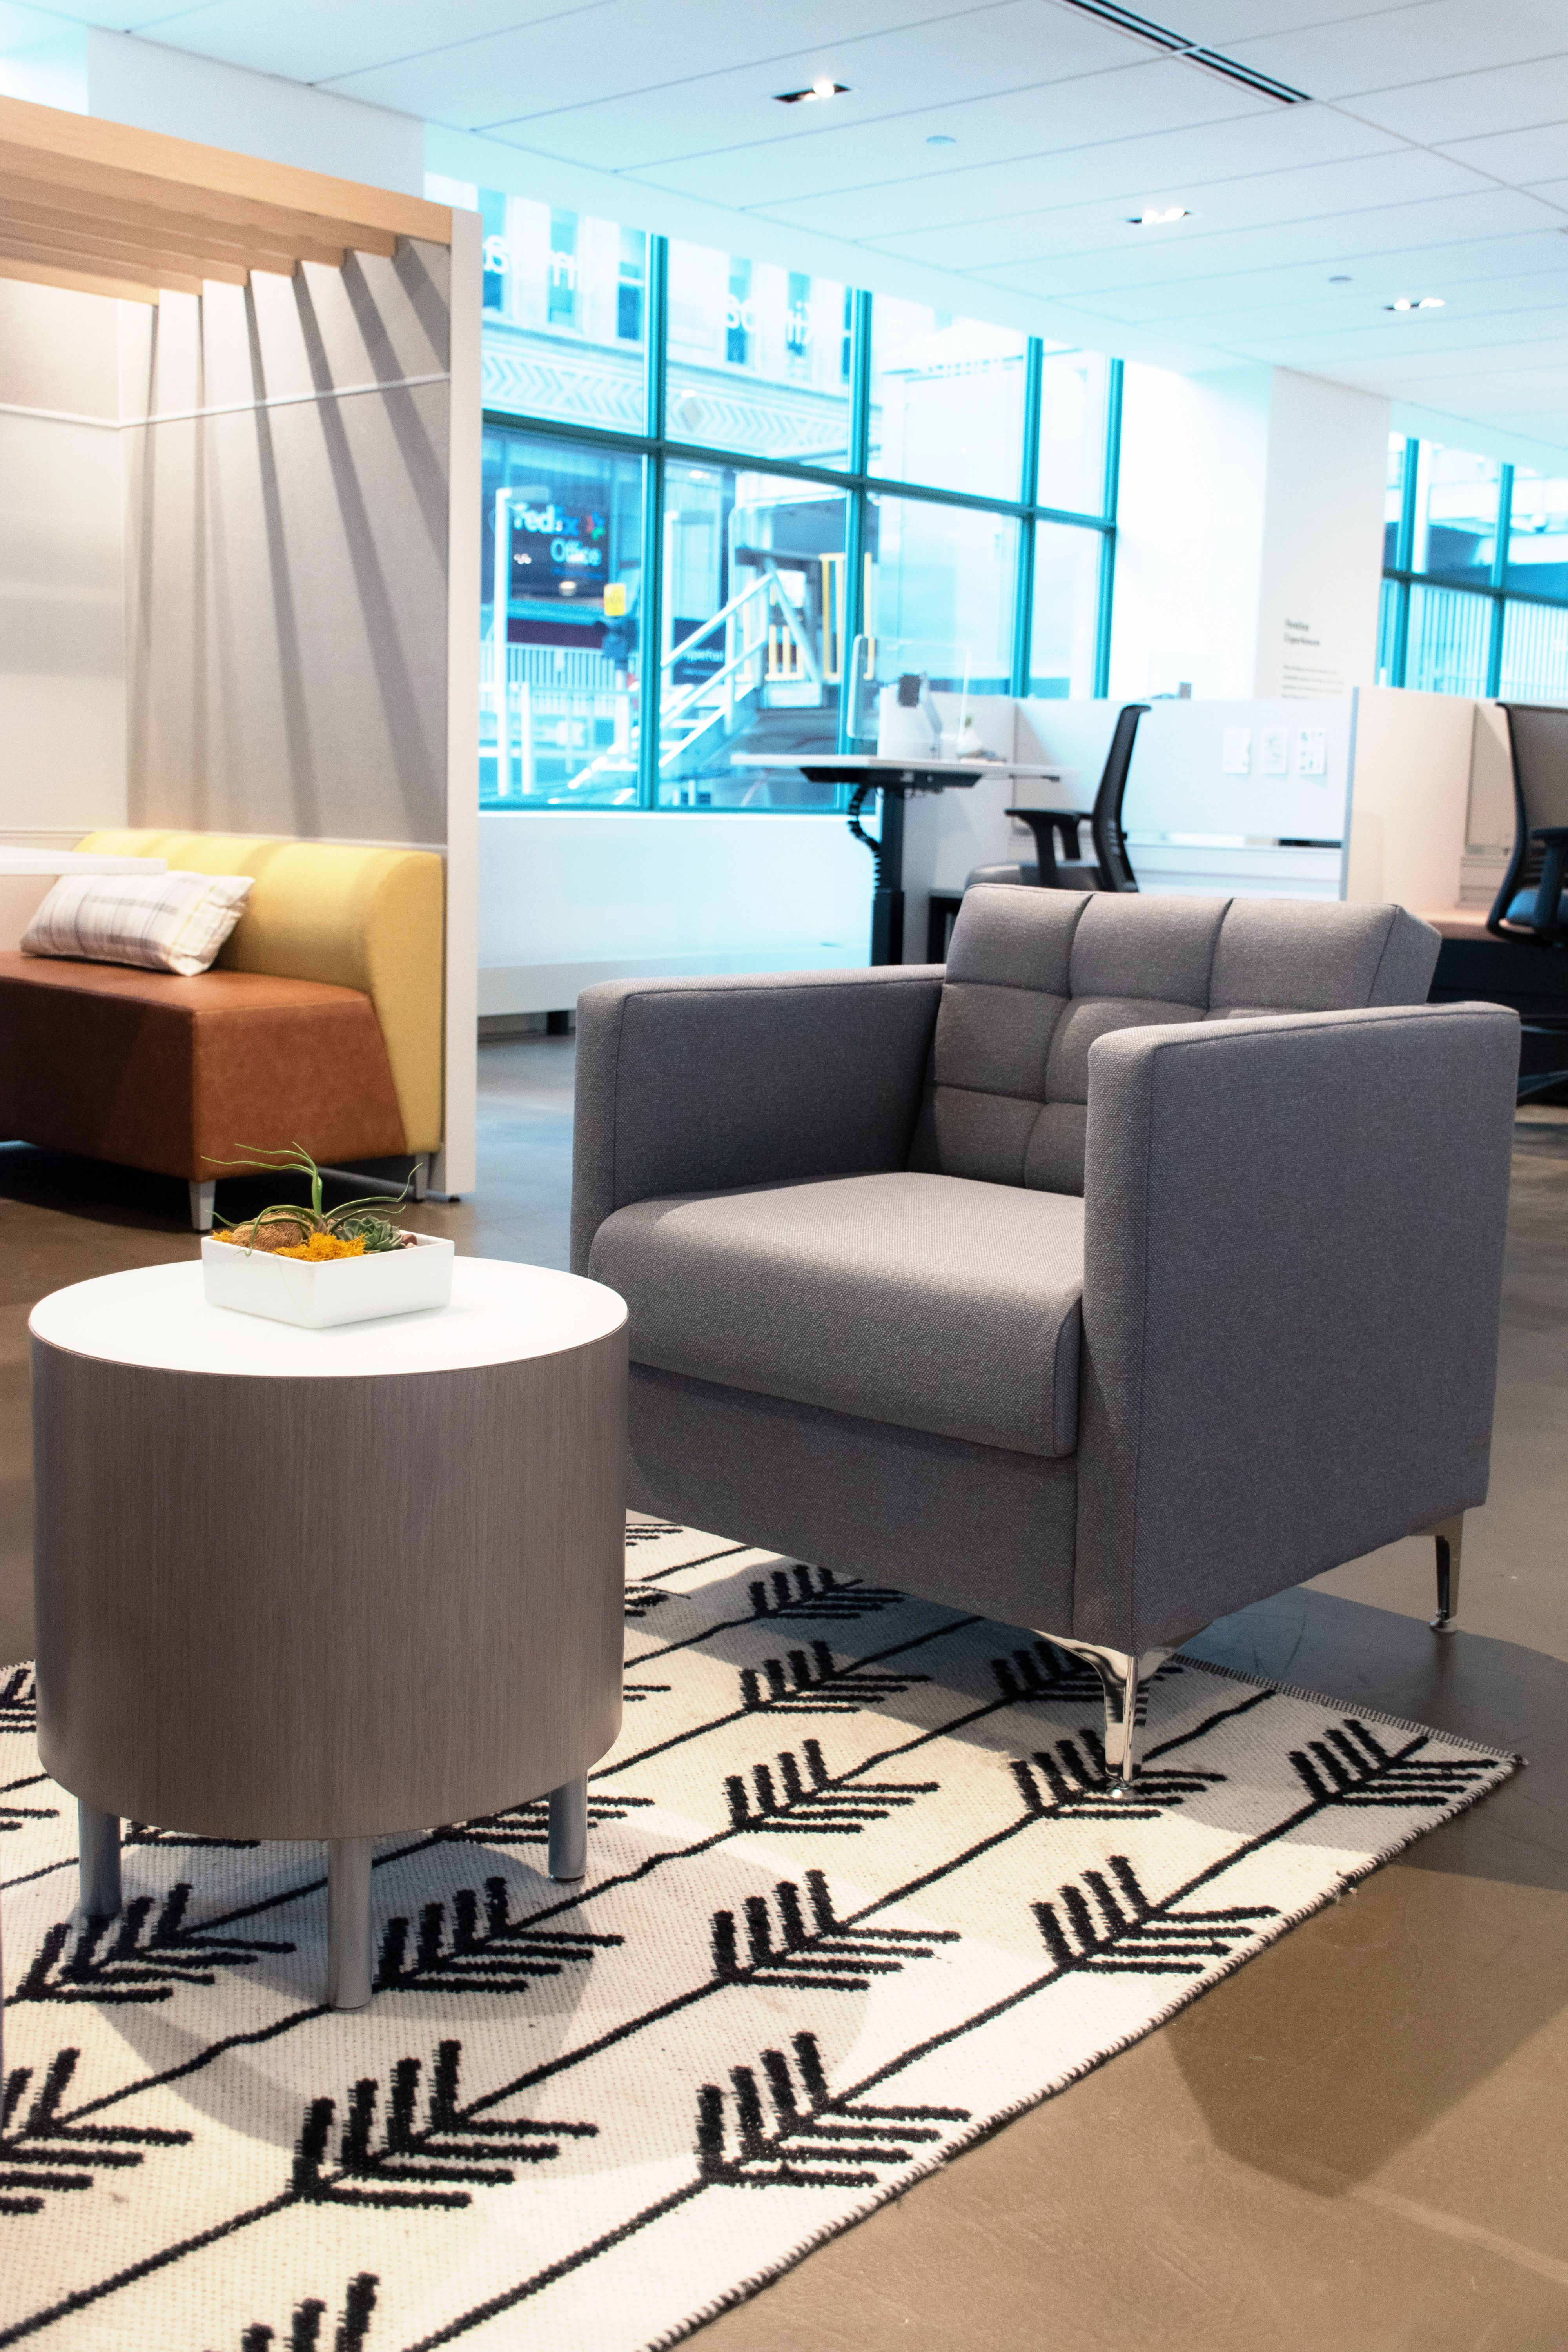 Kimball Furniture Chicago Showroom Boyd Chair And Villa Table